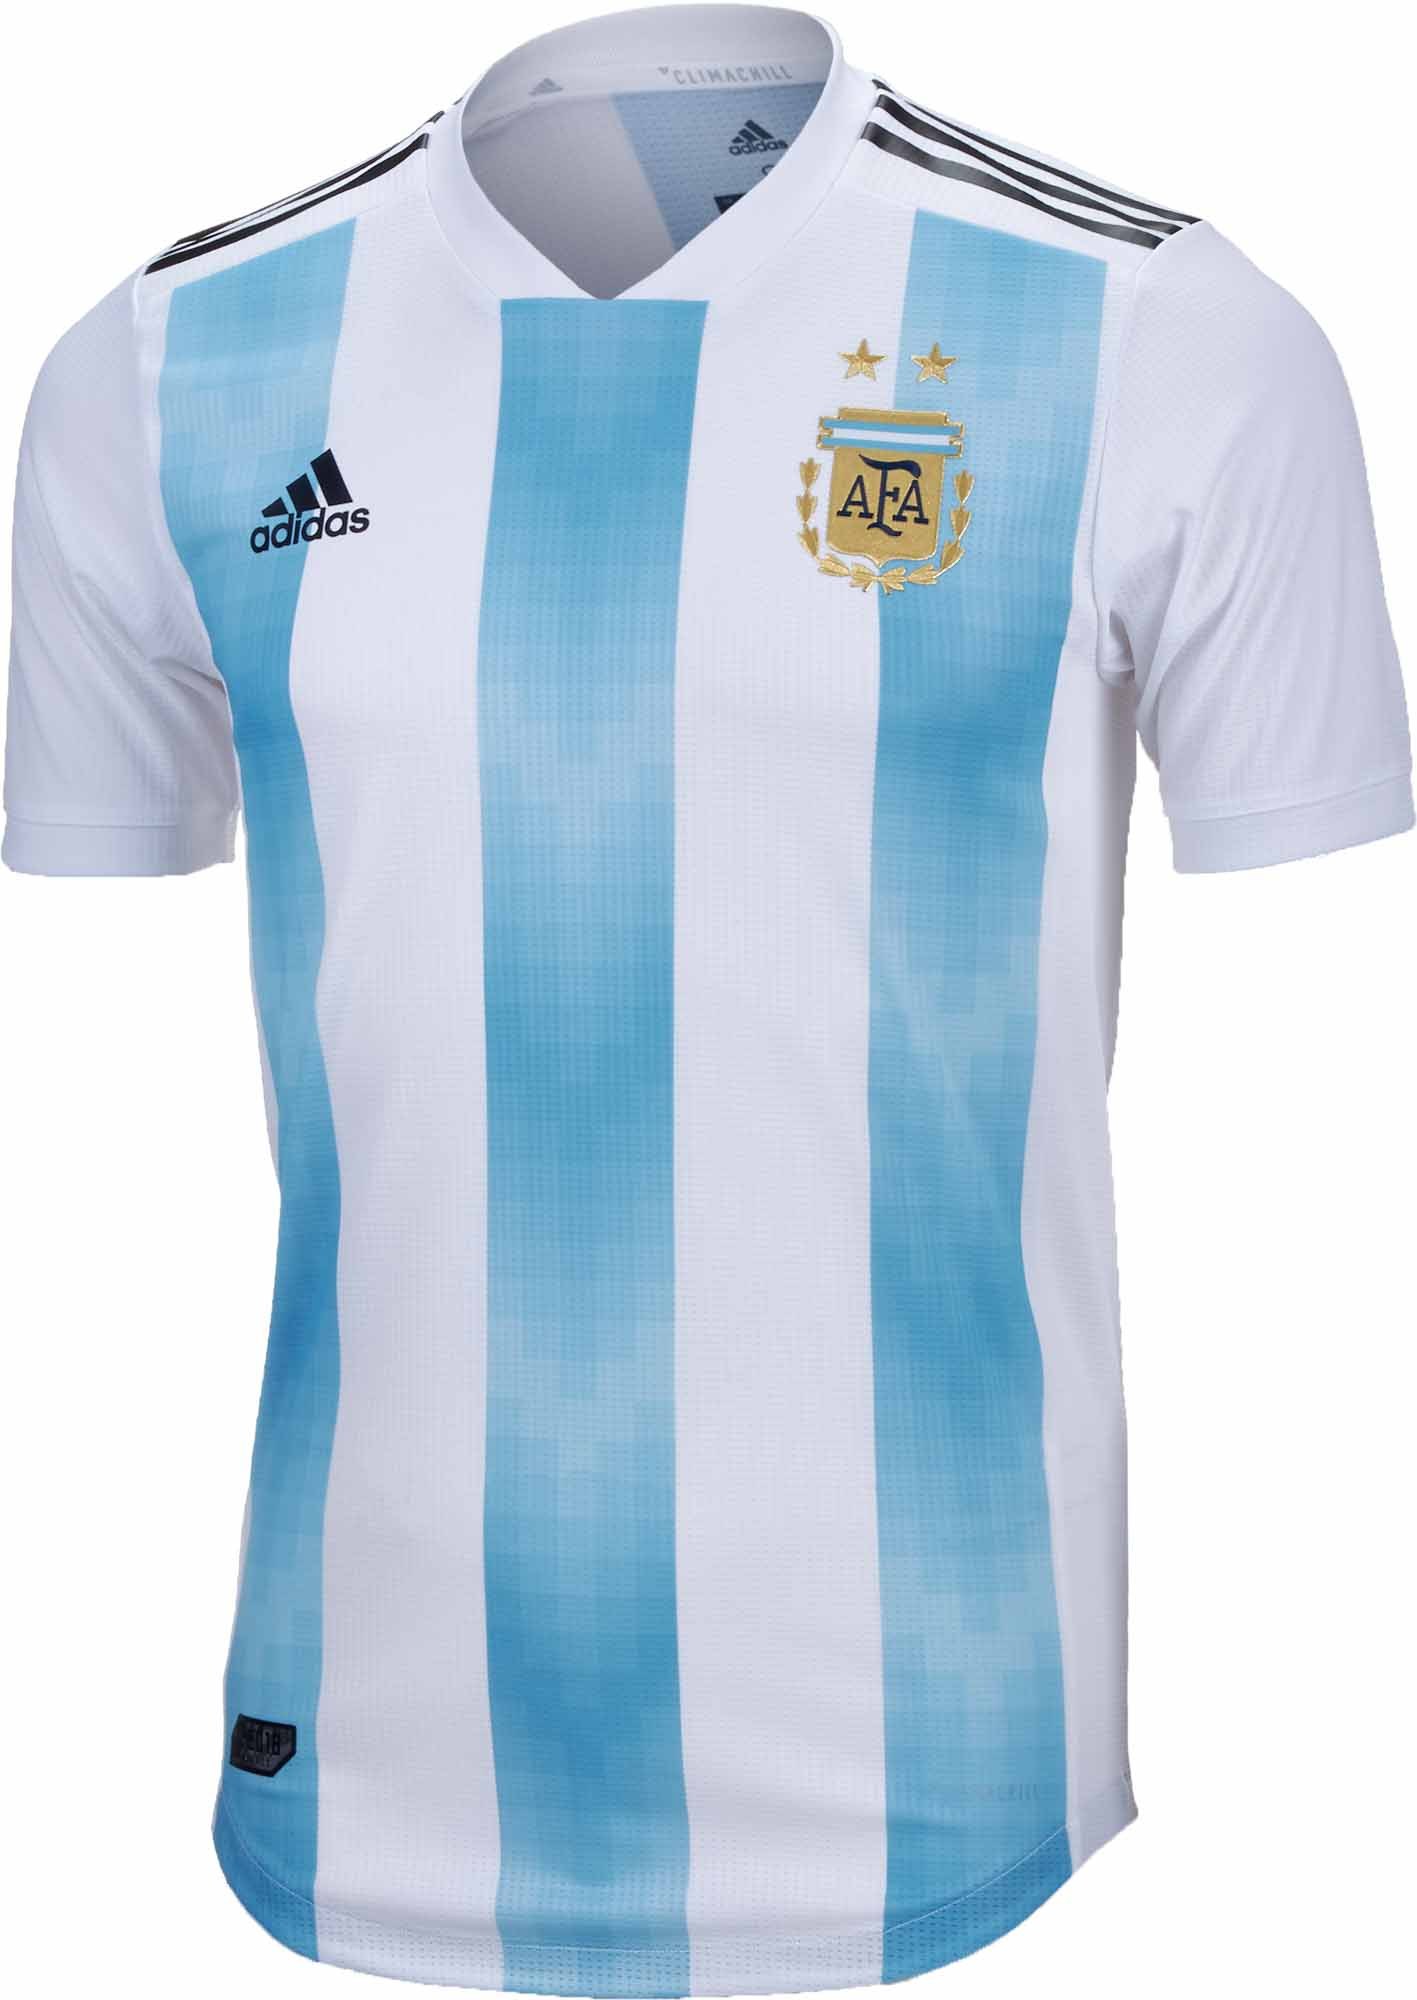 1b10fe006 adidas Argentina Authentic Home Jersey 2018-19 - SoccerPro